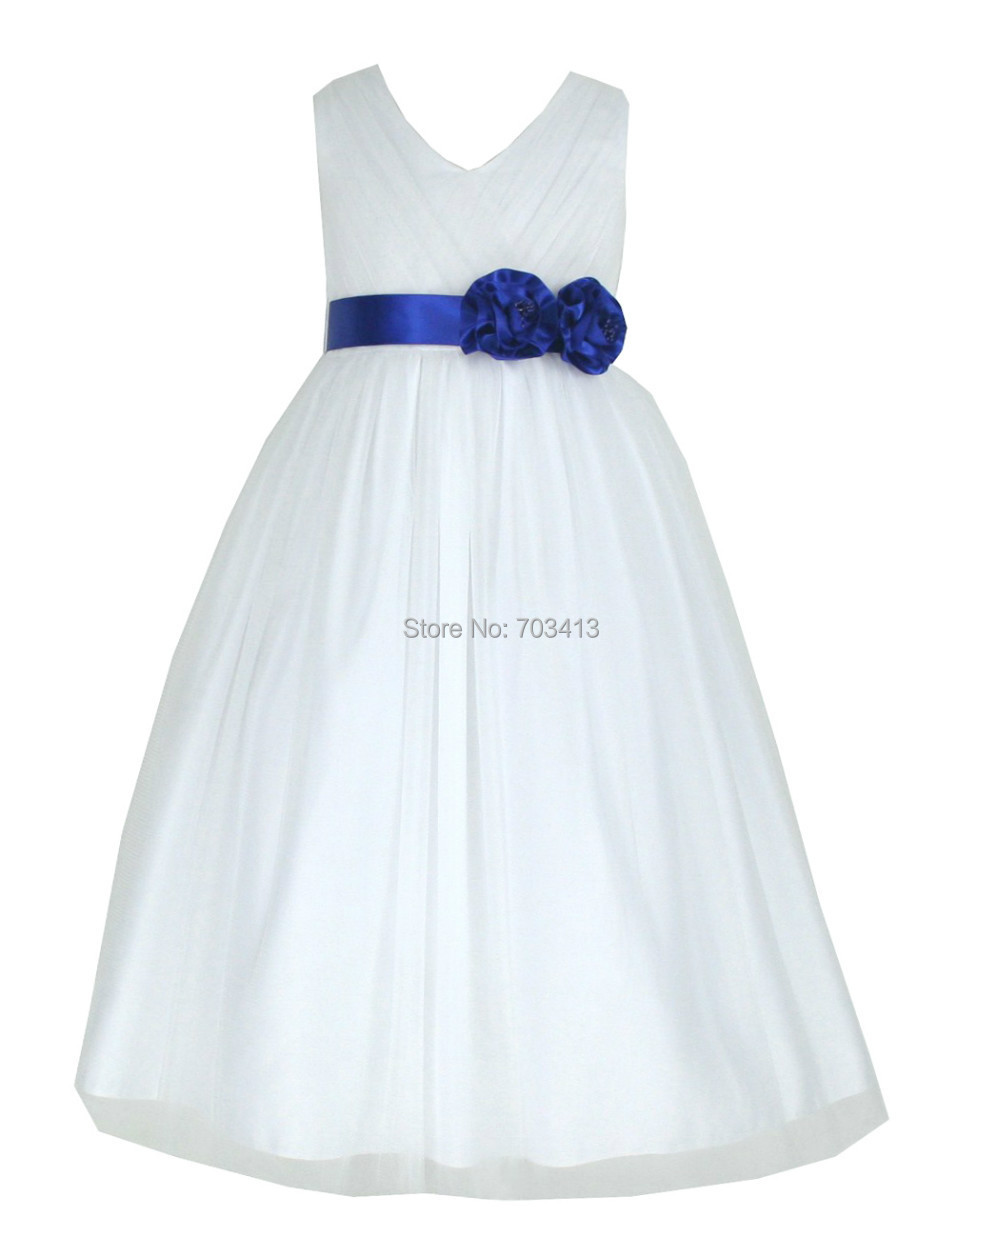 W202RB free shipping white satin & tulle sash pageant flower girl dress 2 4 6 8 10 12 years(China (Mainland))